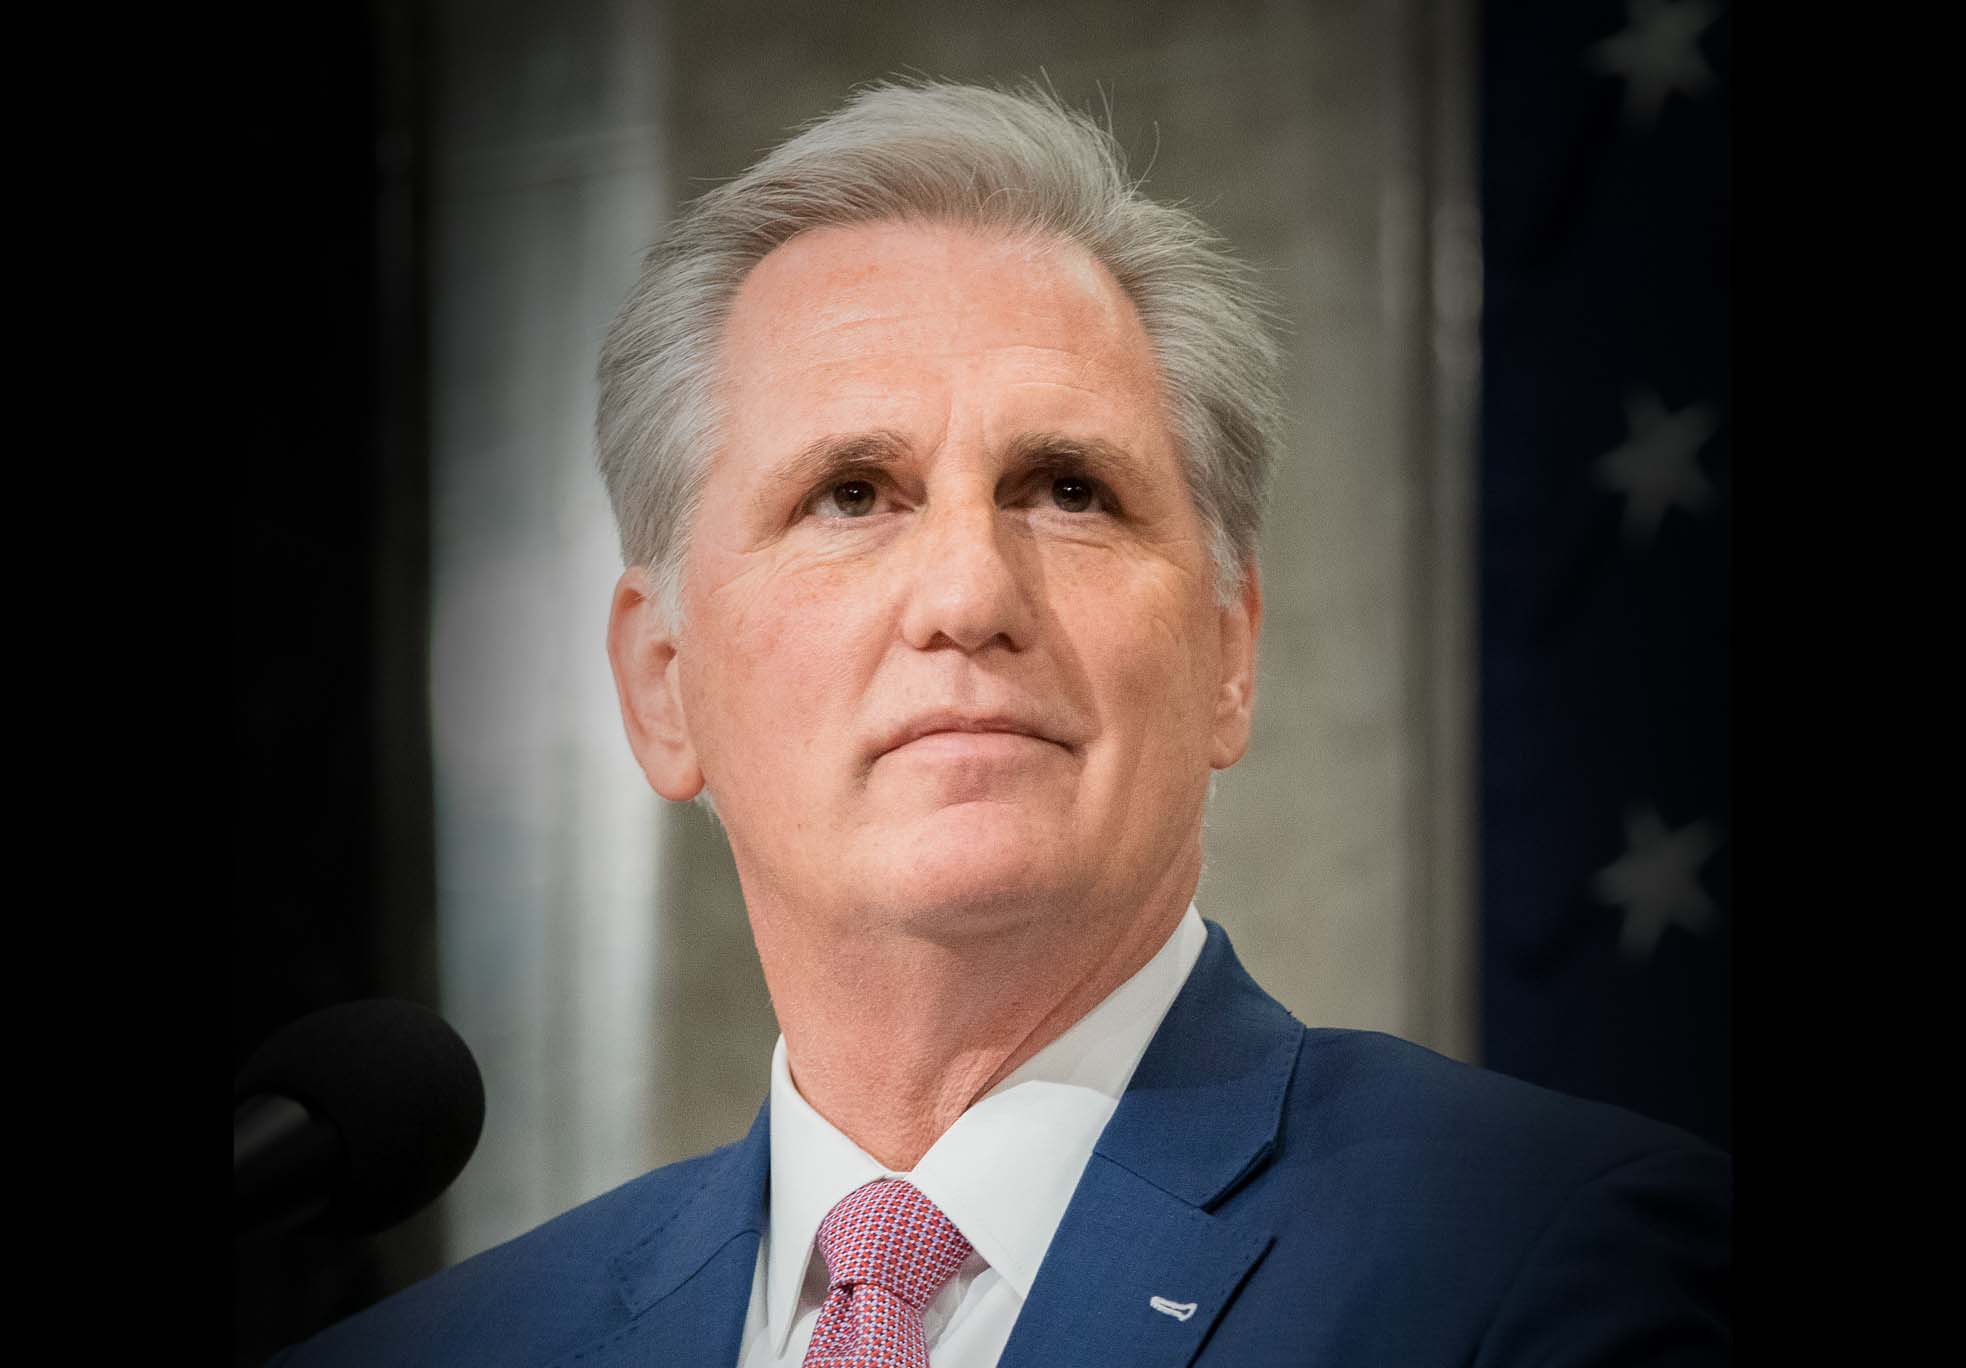 After Huddle With Pence And Mnuchin, GOP Leader Says No 'Need' For More Stimulus Right Now